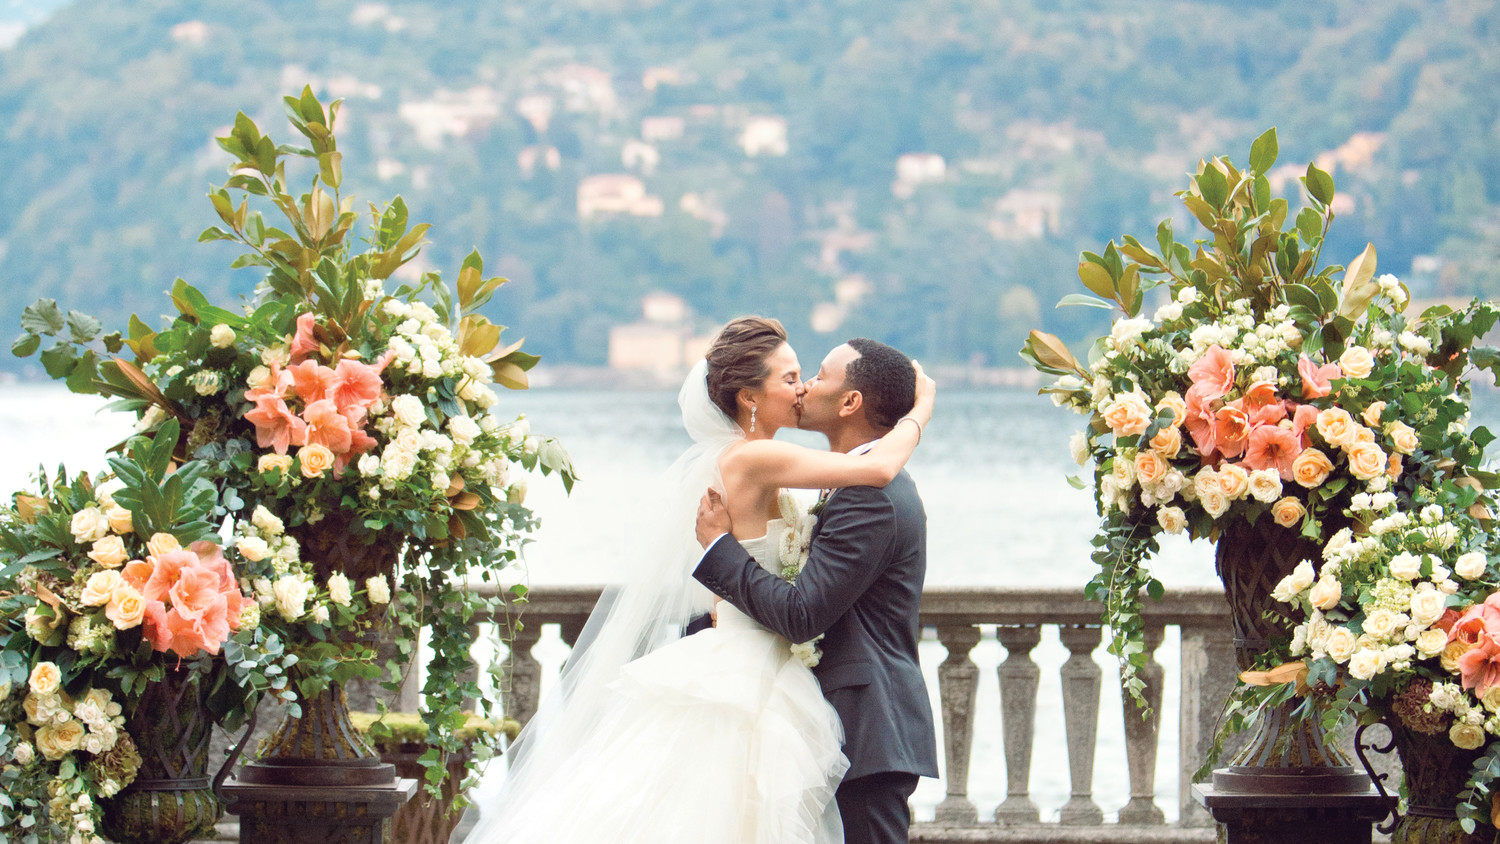 weddings celebrity bride groom kiss martha stewart